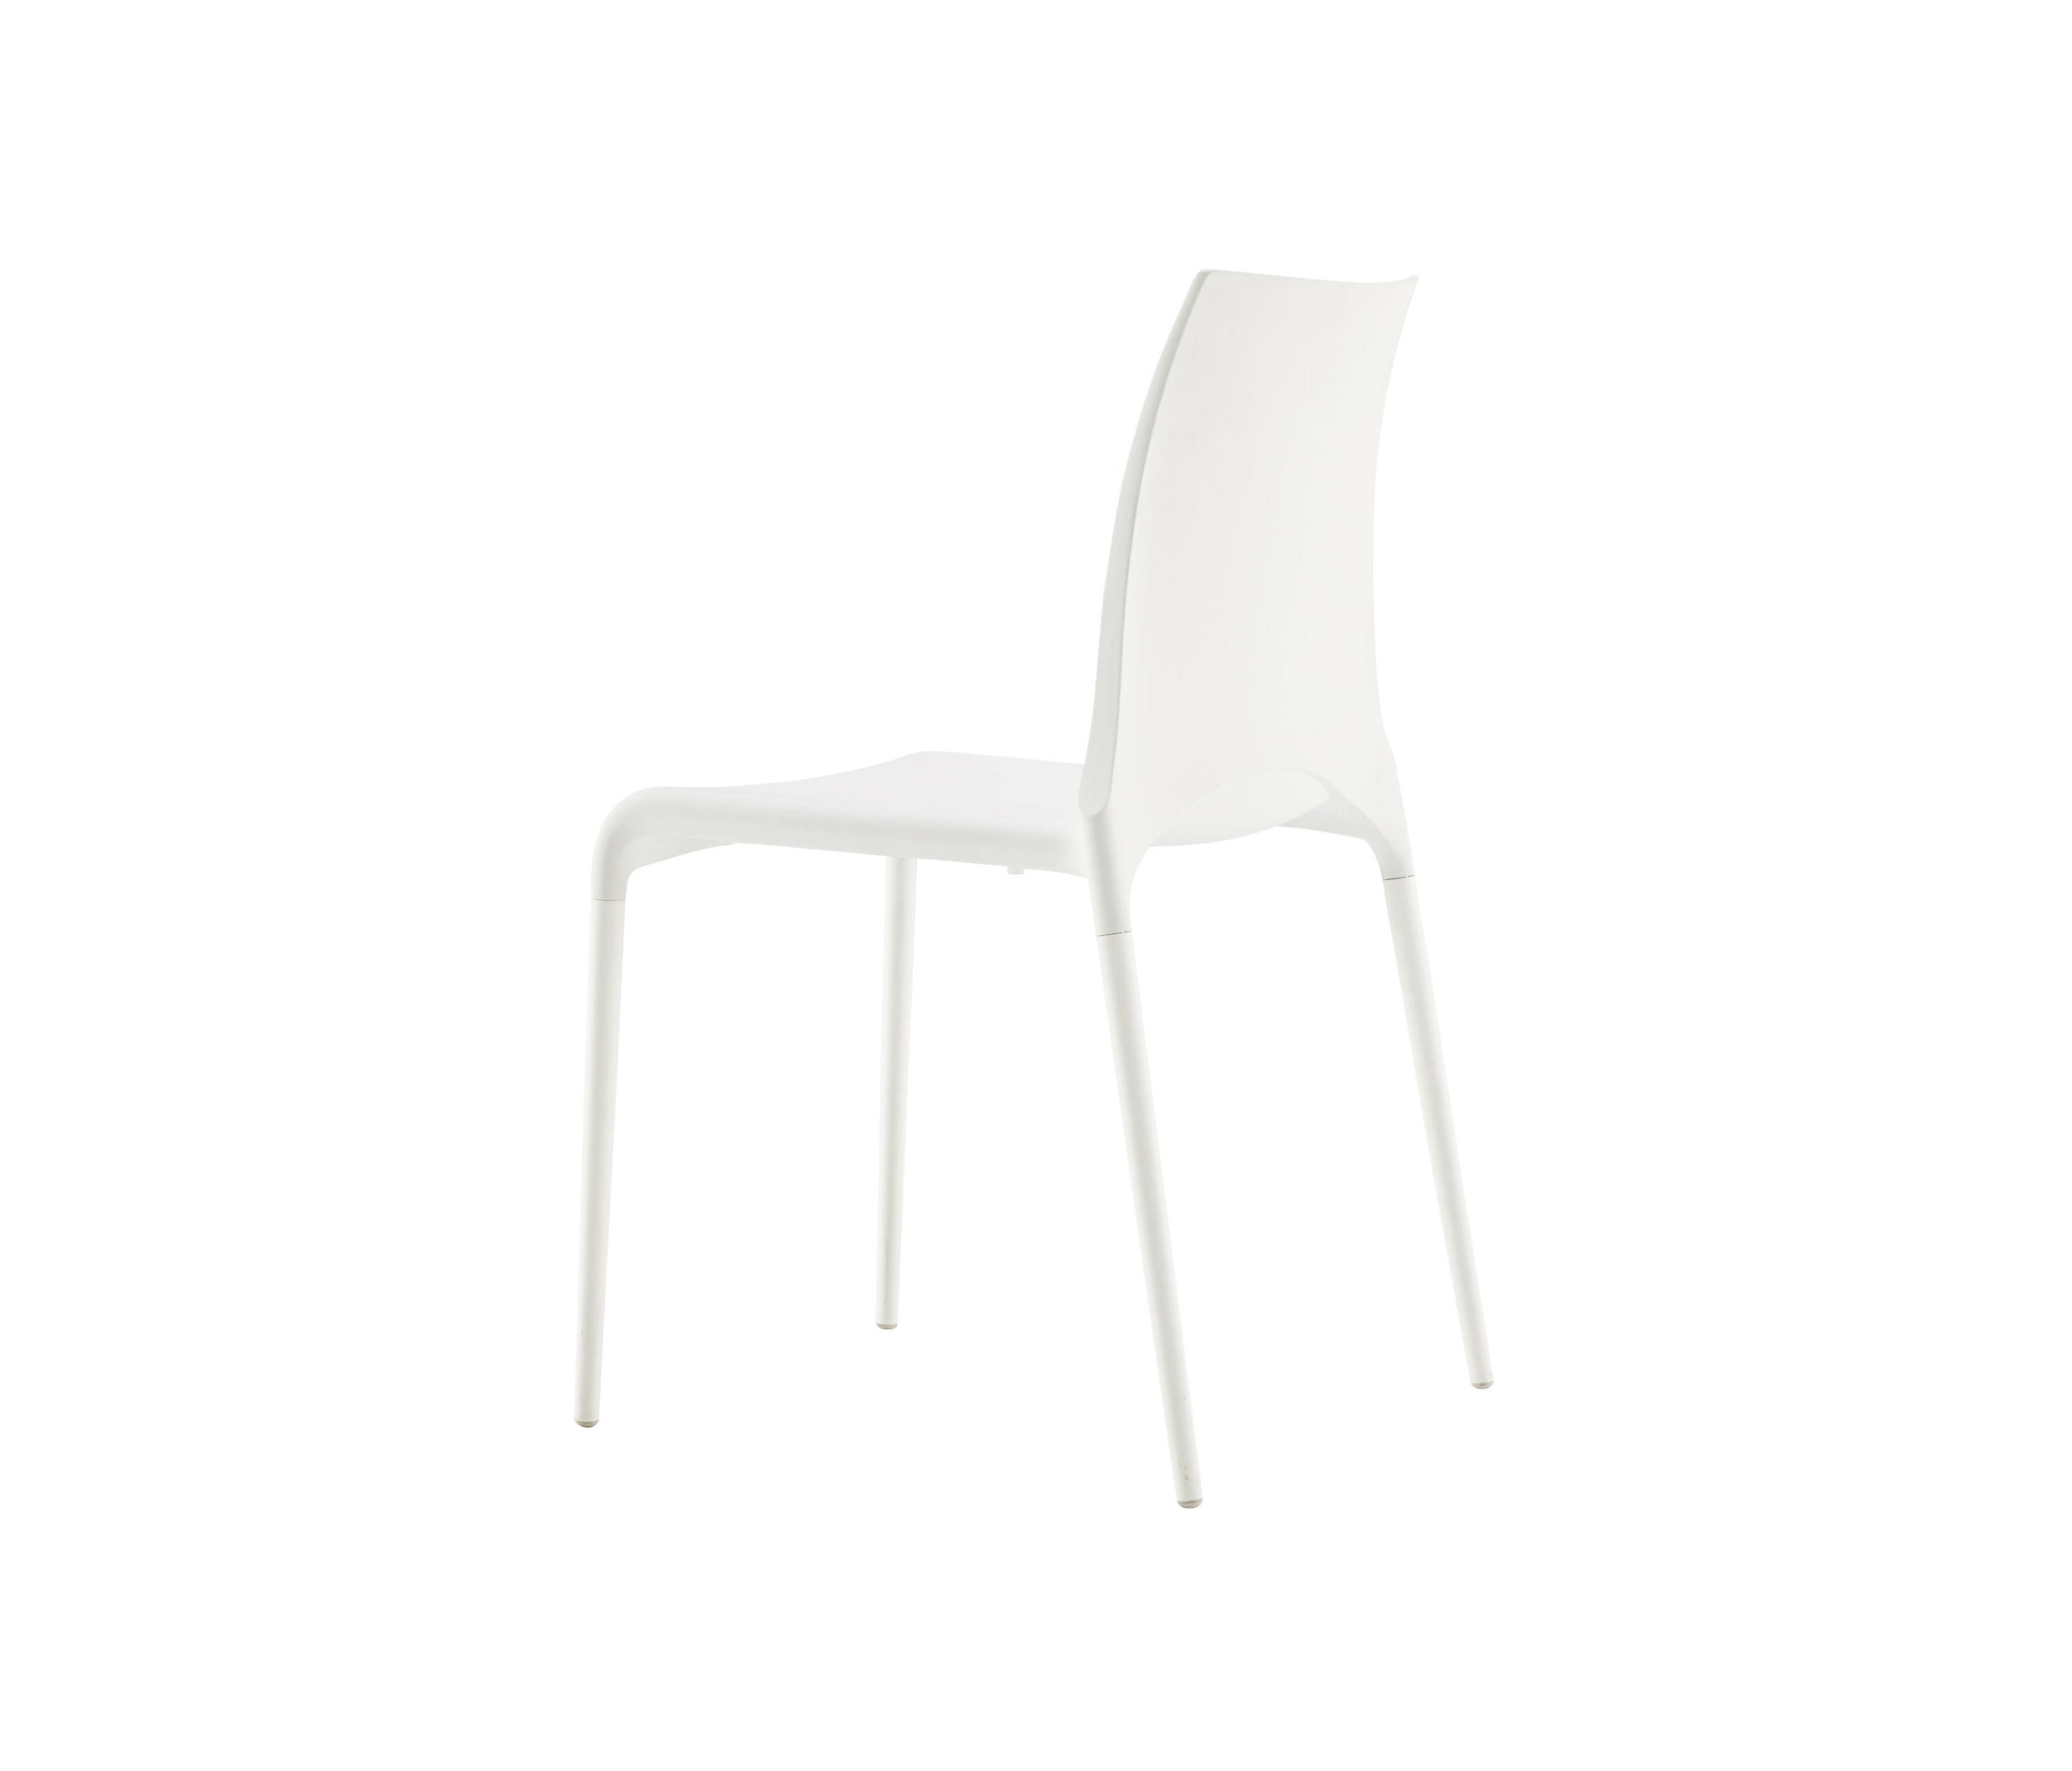 indoor outdoor chairs staples chair back support petra white from ligne roset by